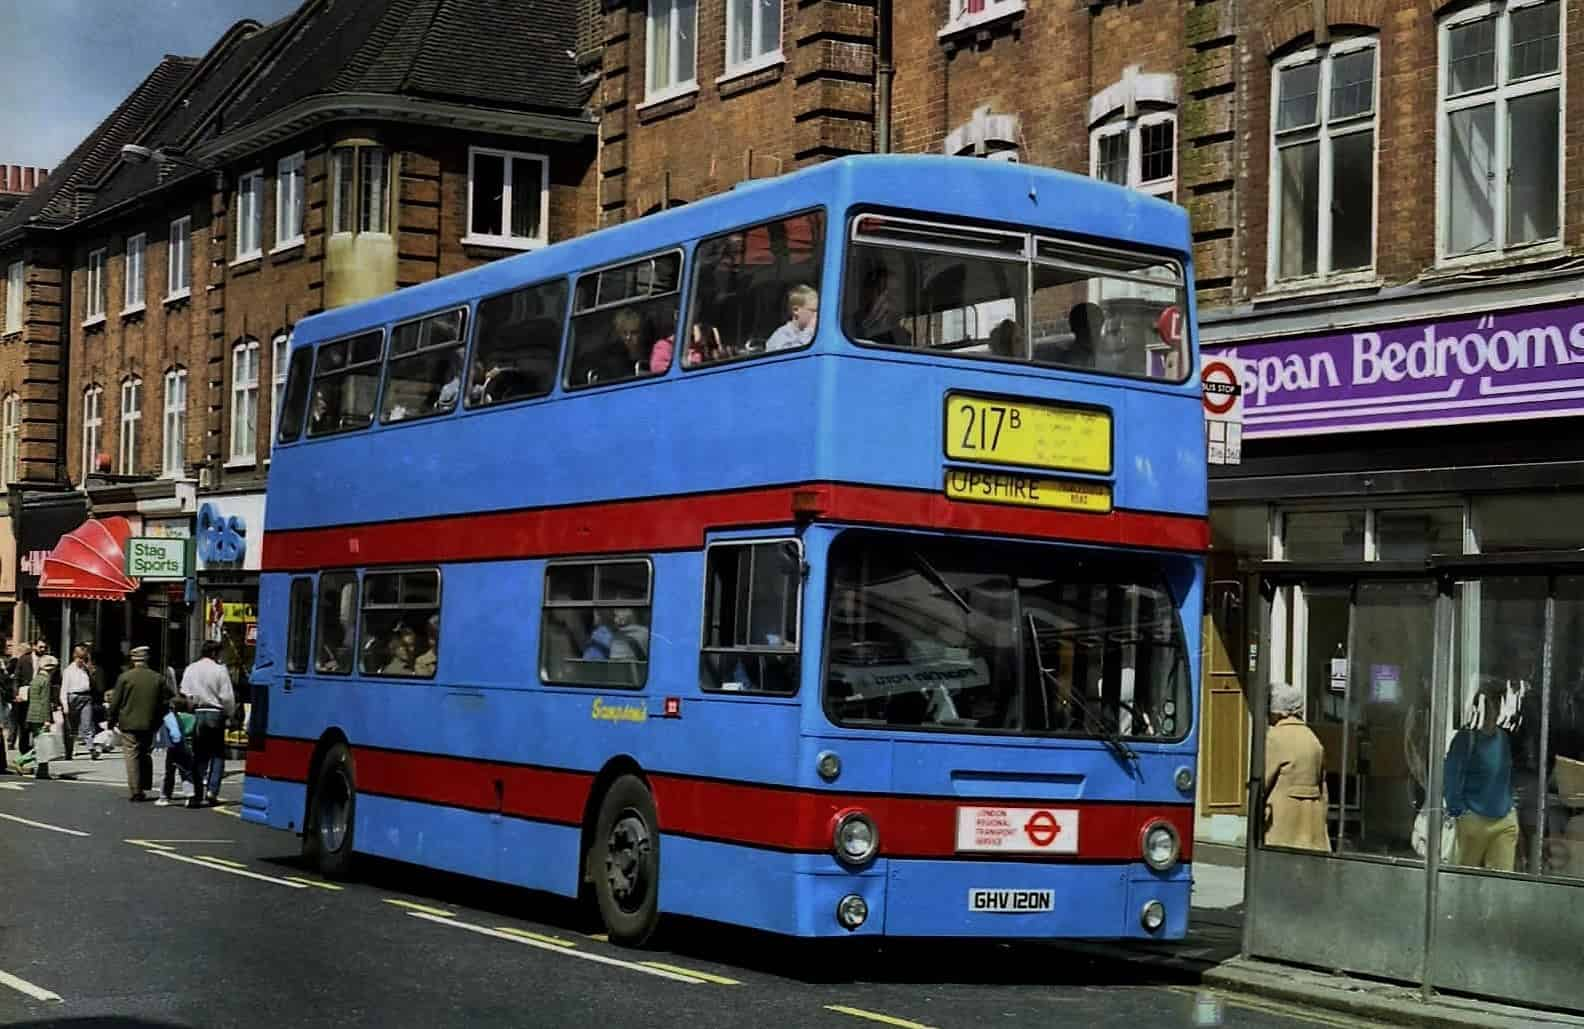 Sampson's Coaches began running route 217b, seen here at Enfield Town, in 1986